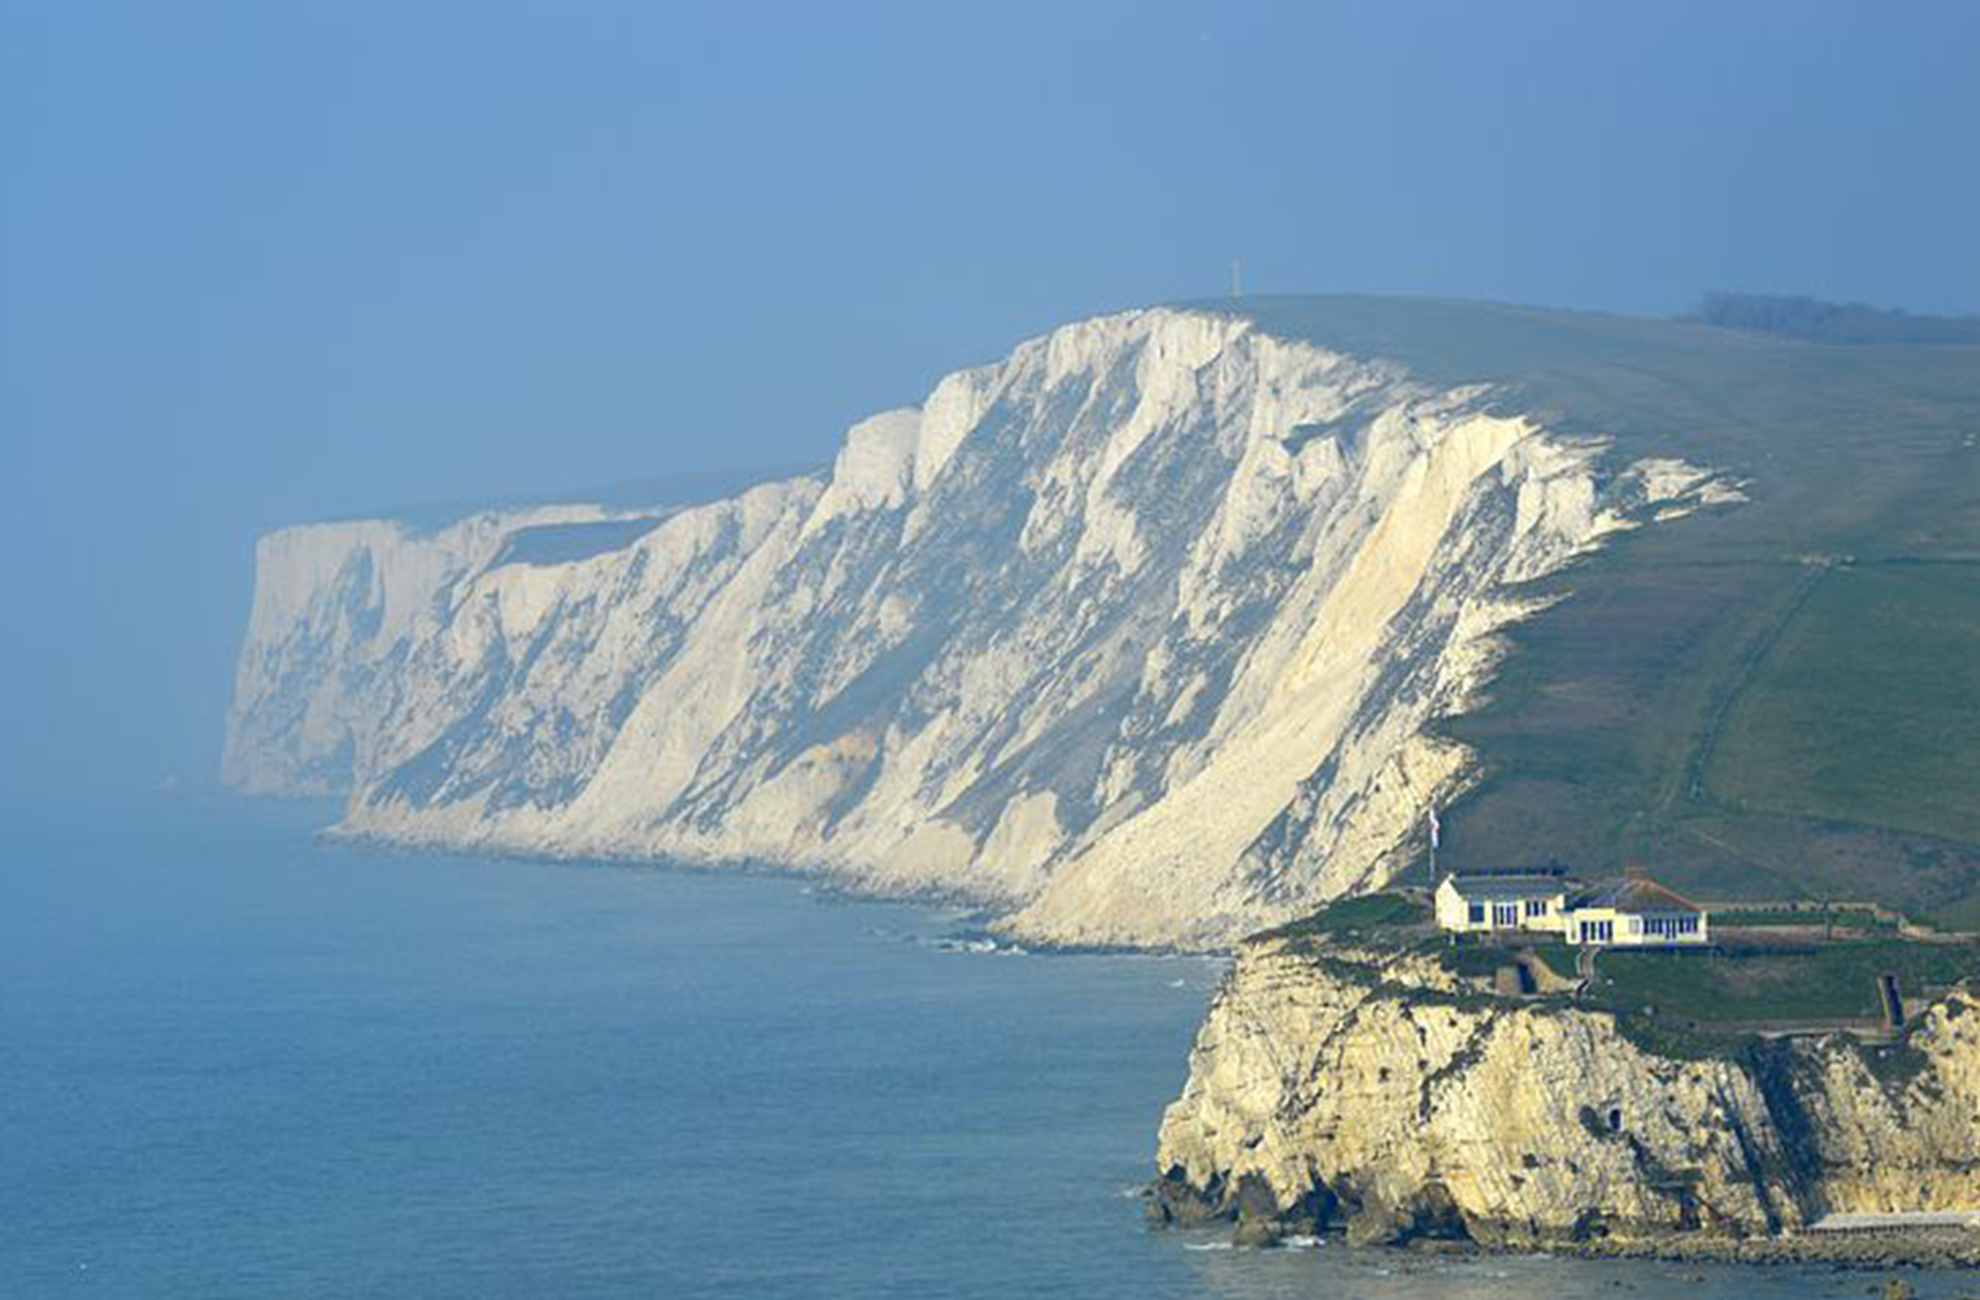 Isle of Wight as a destination for your mini-moon